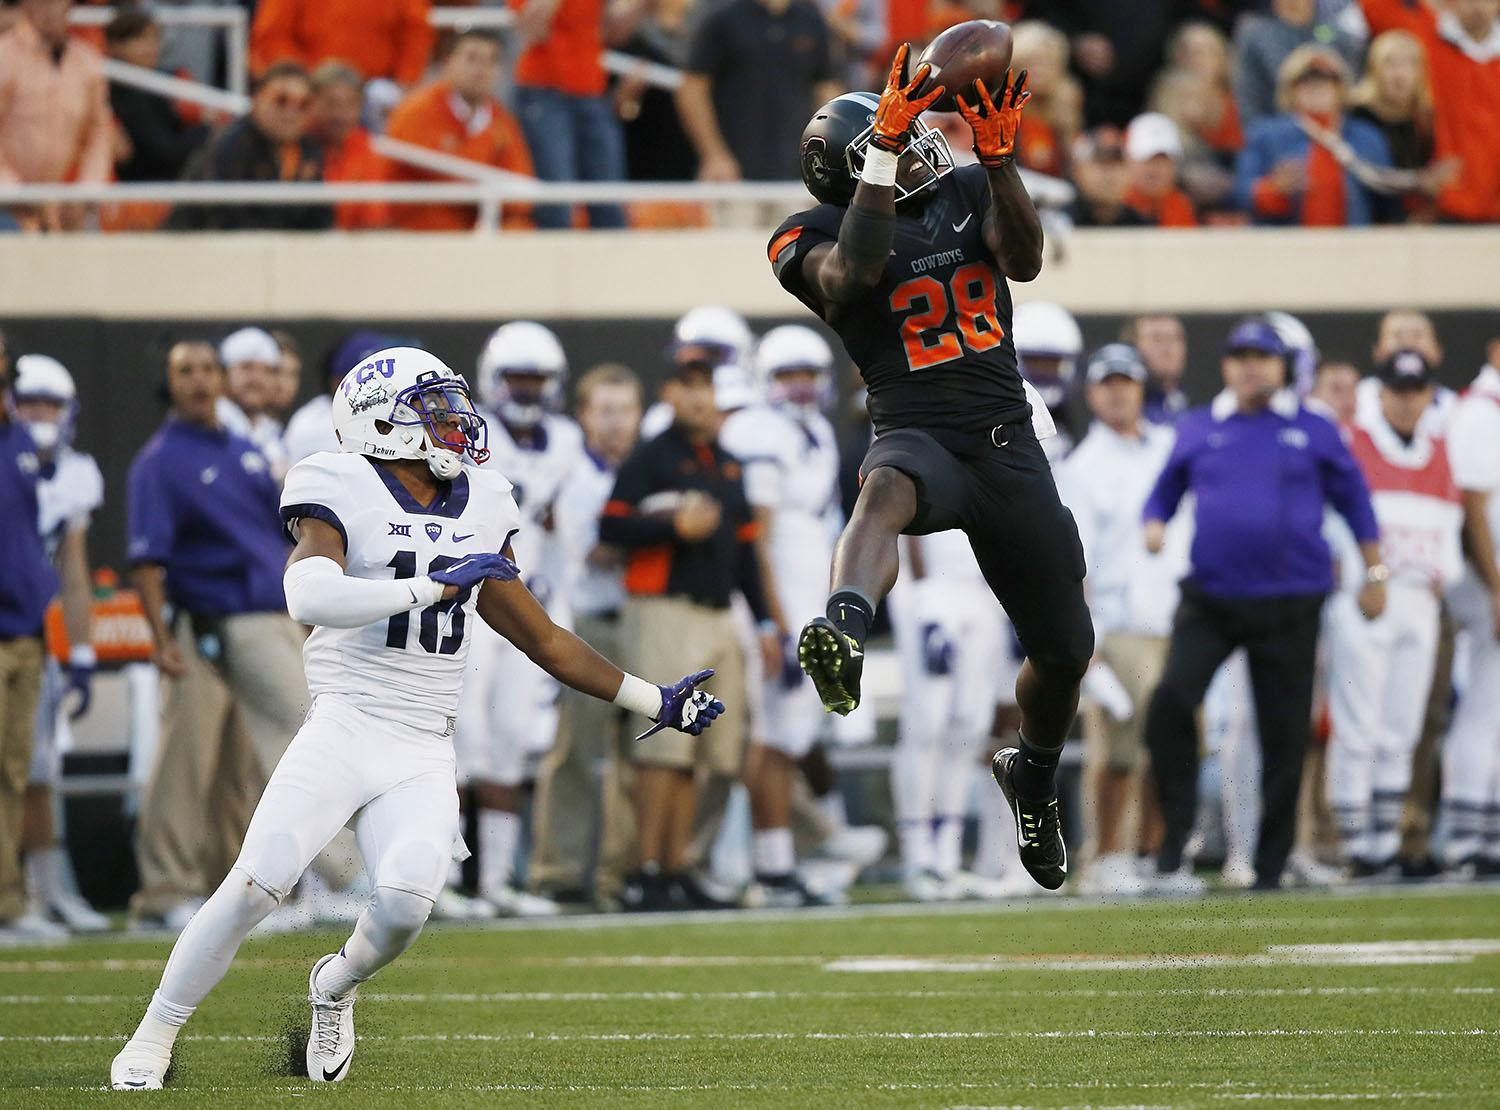 Oklahoma State wide receiver James Washington (28) leaps up for a pass in front of TCU safety Nick Orr (18) in the third quarter of an NCAA college football game in Stillwater, Okla., Saturday, Nov. 7, 2015. Washington took the pass into the end zone for a touchdown and Oklahoma State won 49-29. (AP Photo/Sue Ogrocki)